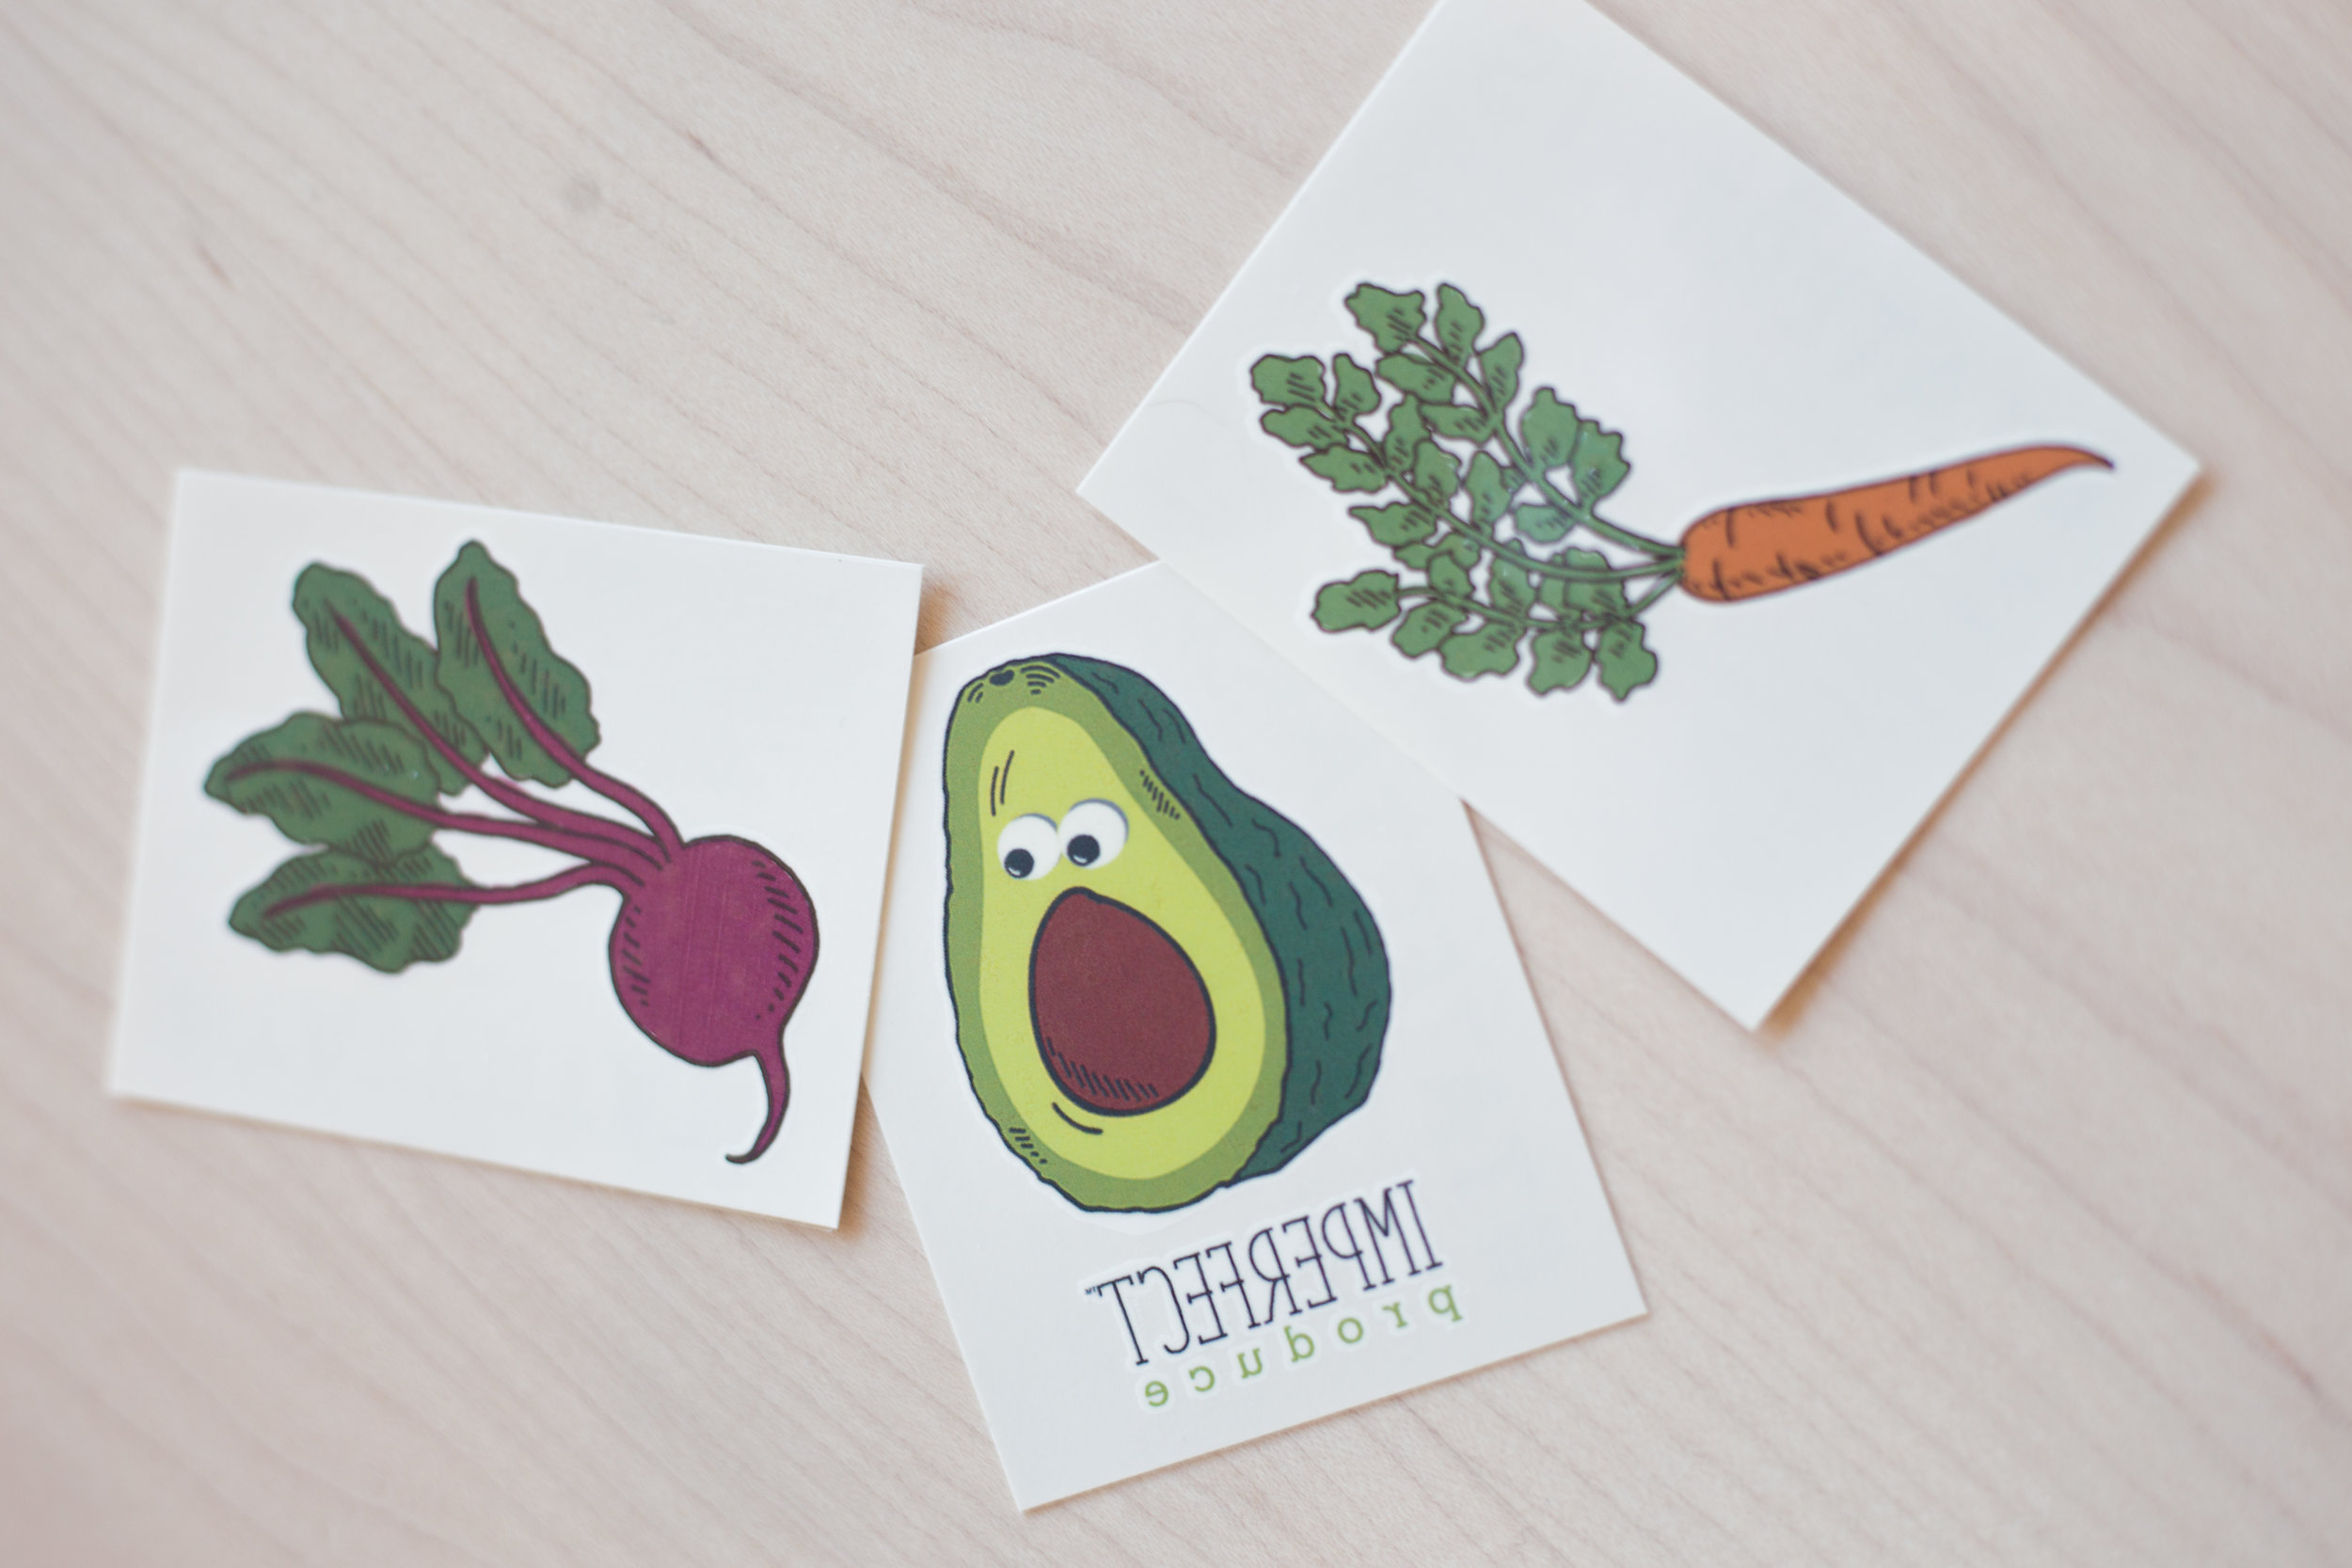 We encouraged all of our guests to take home a vegetable temporary tattoo from Tater Tats as a souvenier!